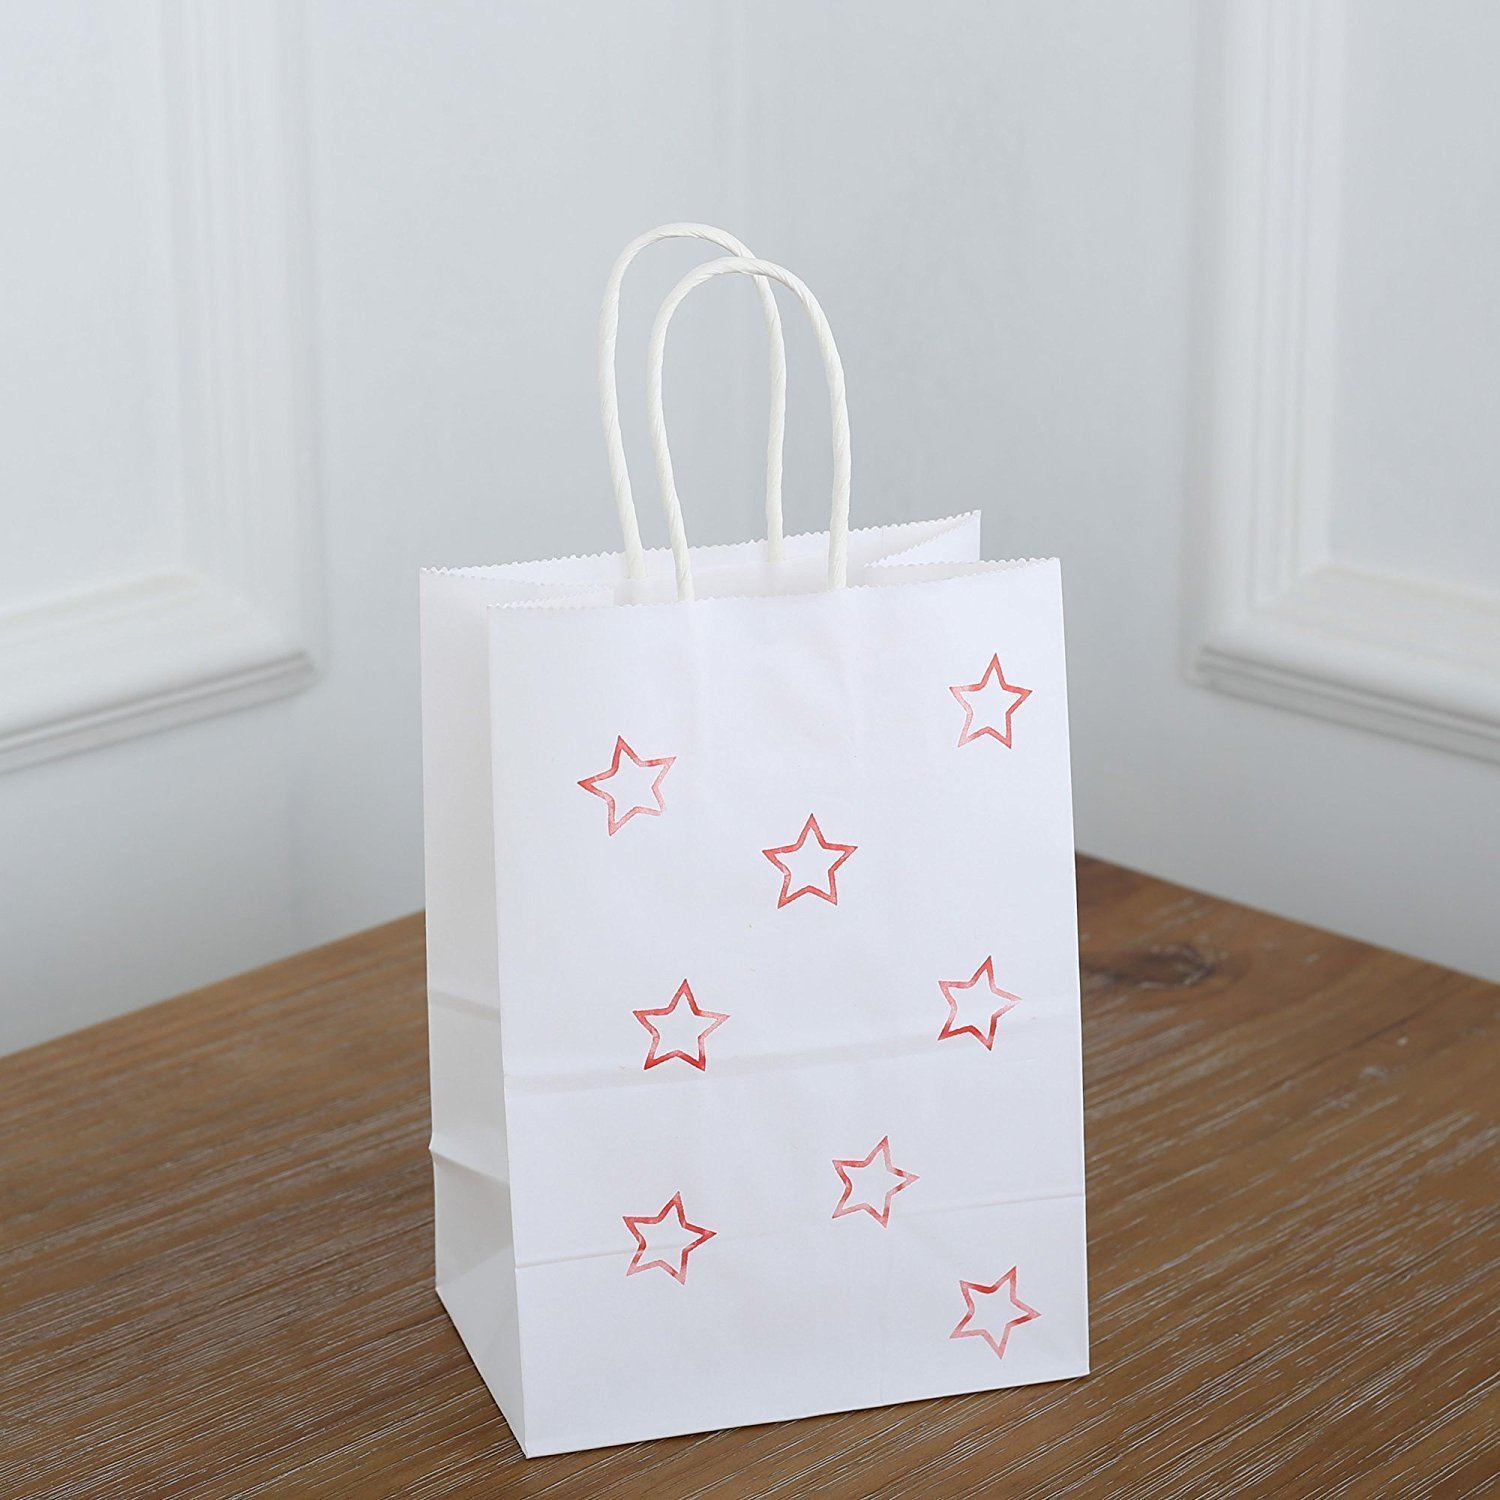 BagDream Small Kraft Paper Bags 50Pcs 5.25''x3.75''x8'', Party Bags, Shopping Bag, Kraft Bags, White Bags with Handles by BagDream (Image #6)